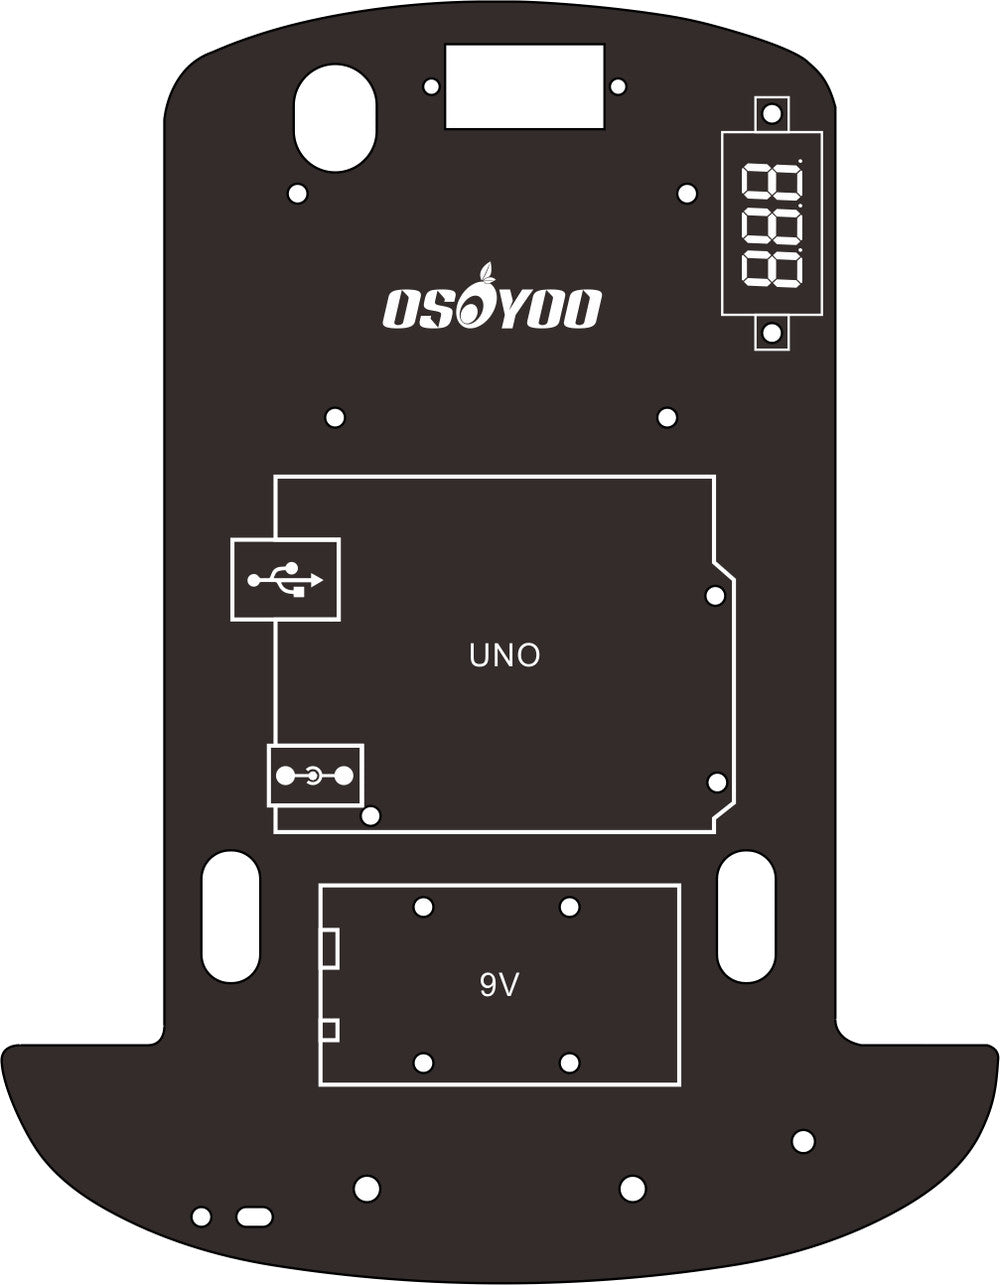 Replacement Chassis for Osoyoo Model-3 Robot Learning Kit V2 (model#2020001700)